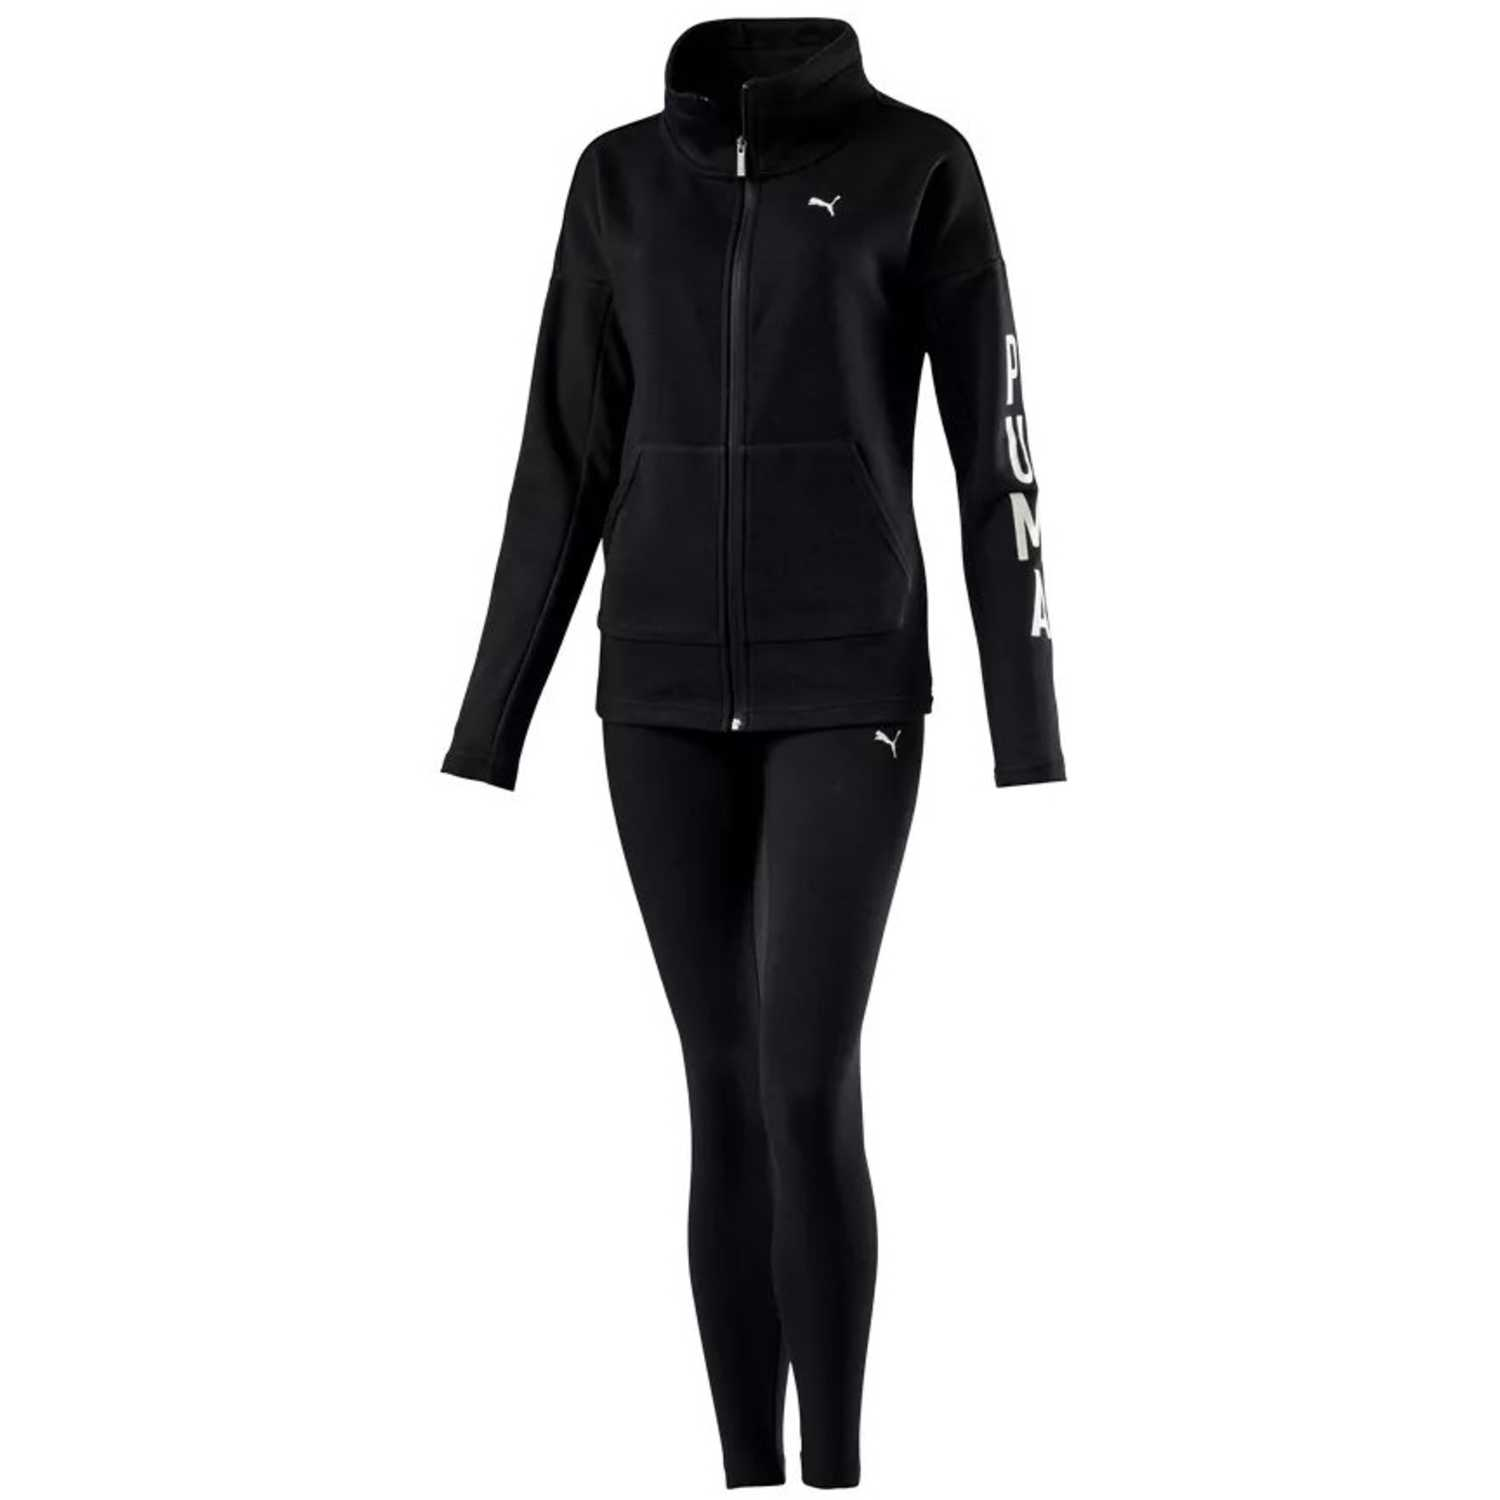 Puma graphic legging sweat suit Negro Sets Deportivos Tops y Bottoms